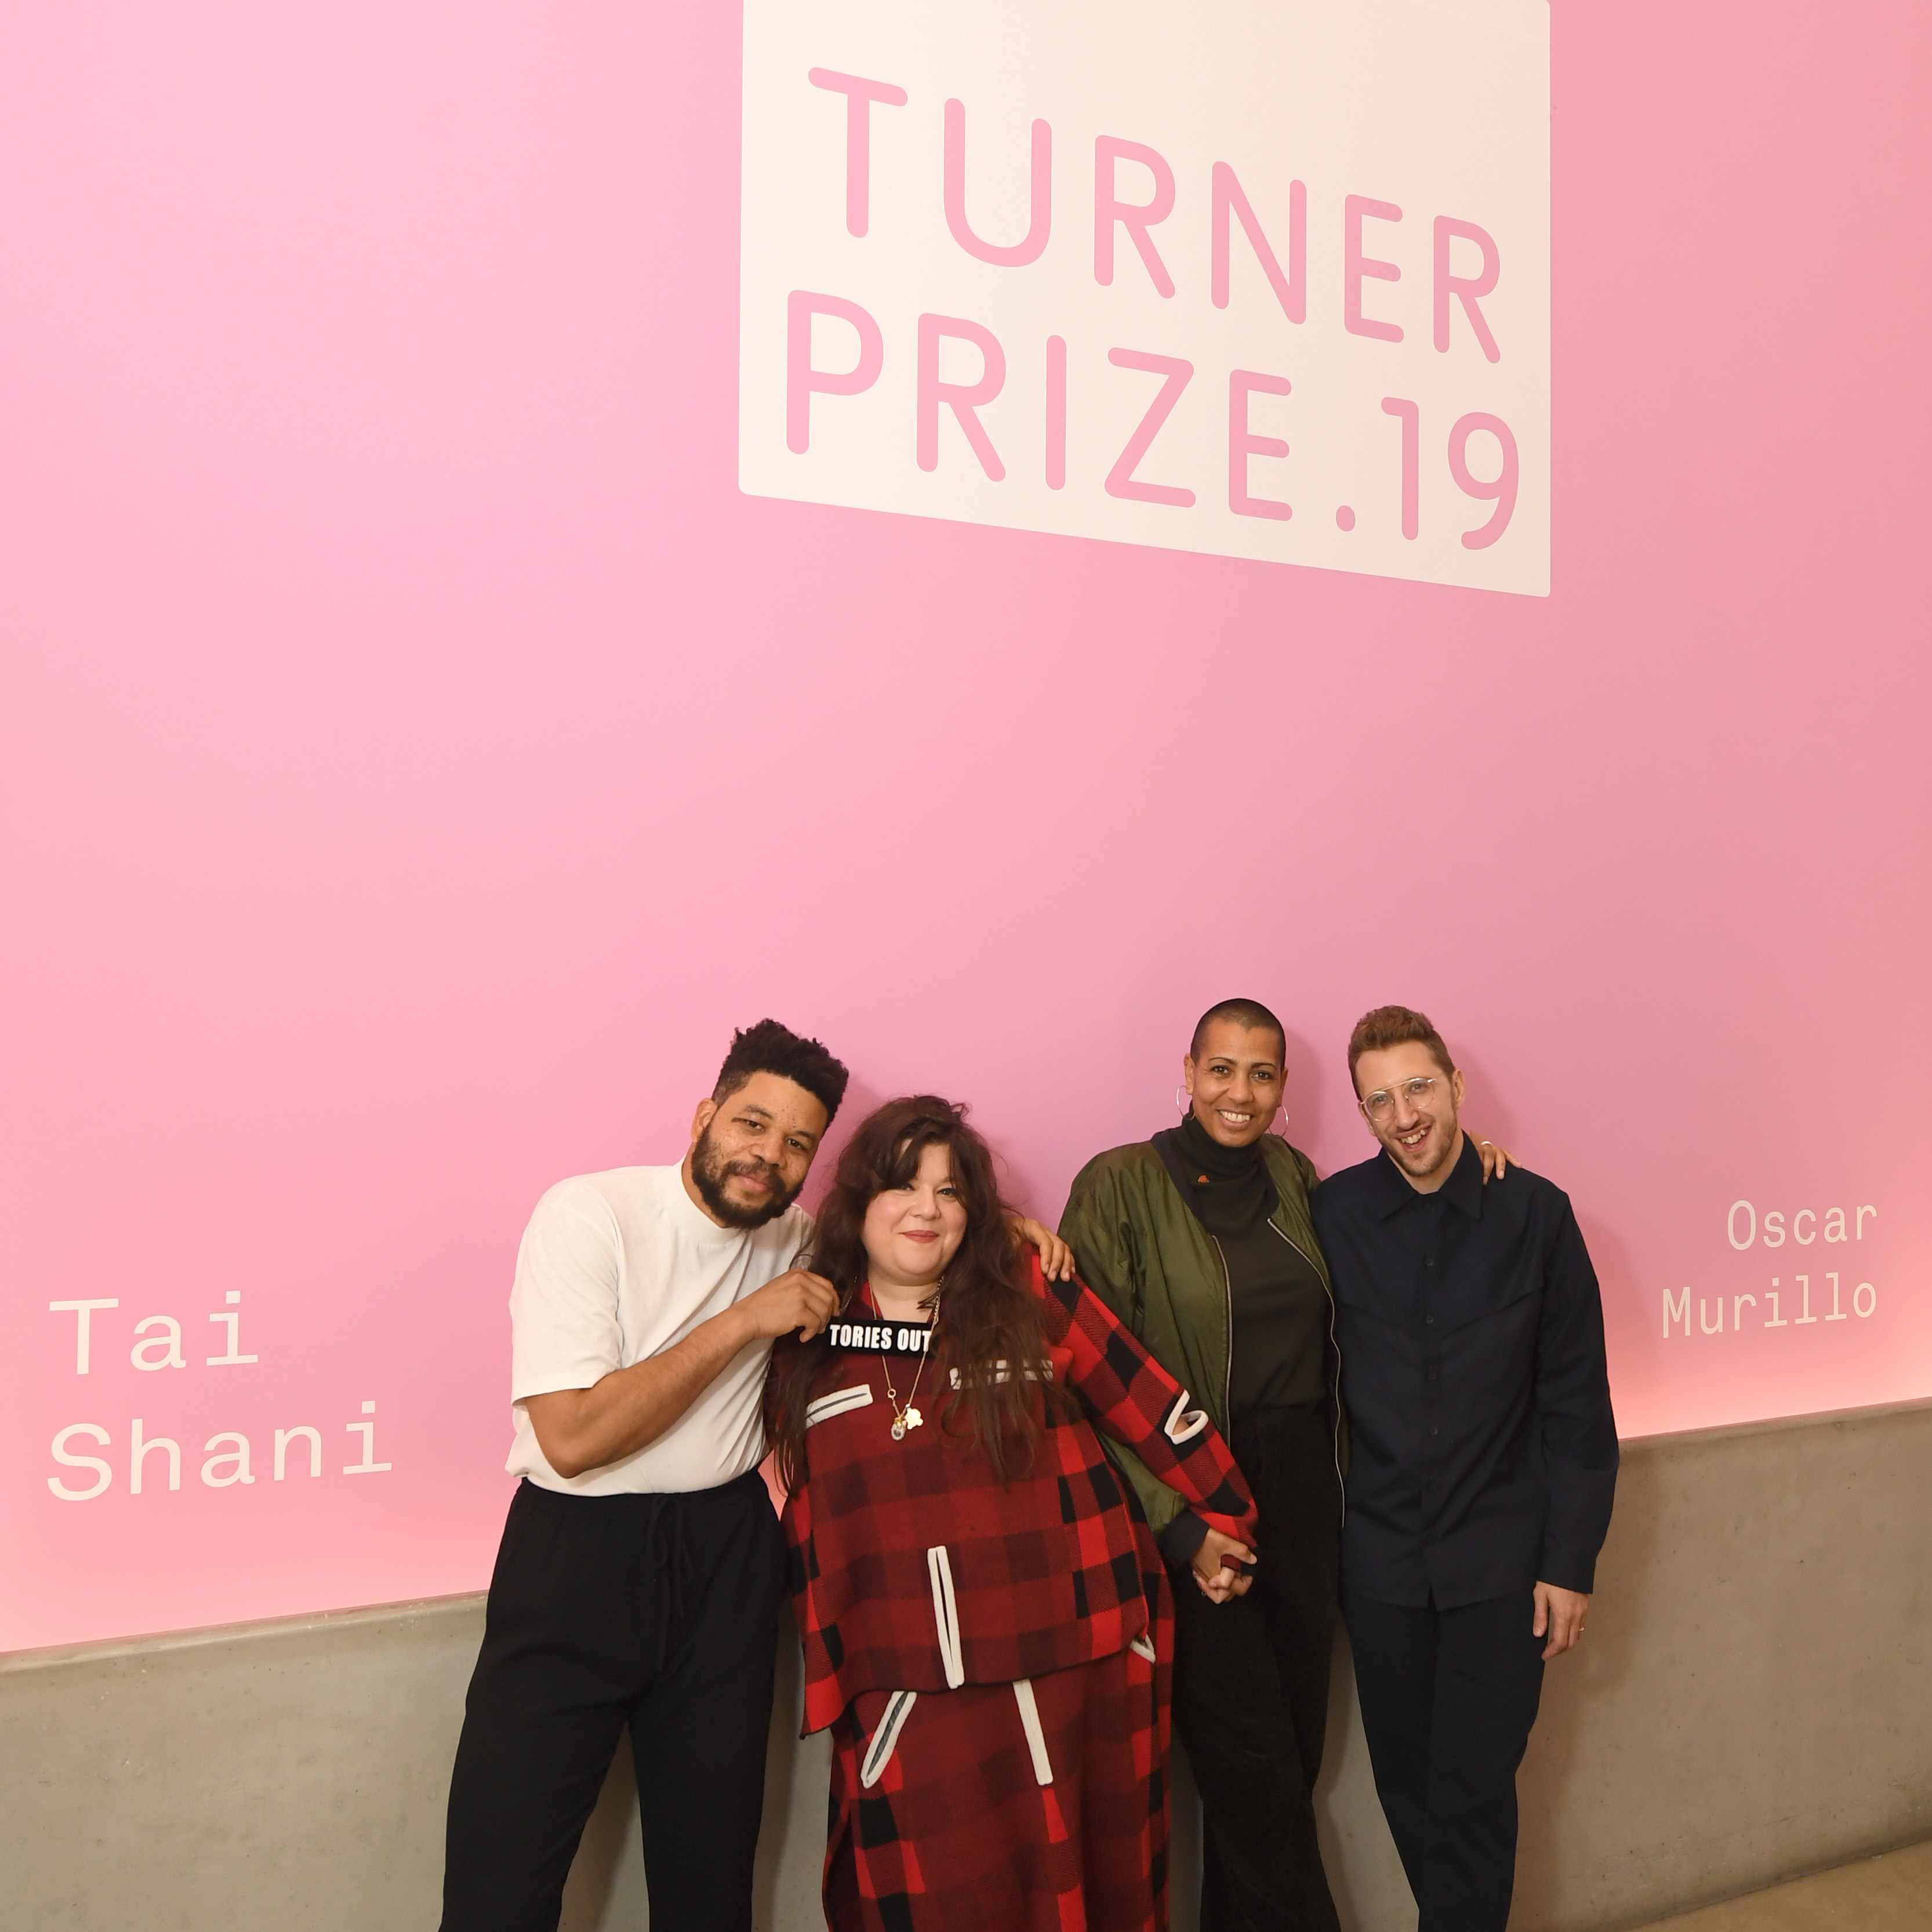 Oscar Murillo, Tai Shani, Helen Cammock, and Lawrence Abu Hamdan. Photo: Stuart C Wilson/Getty Images. Courtesy of Turner Contemporary.